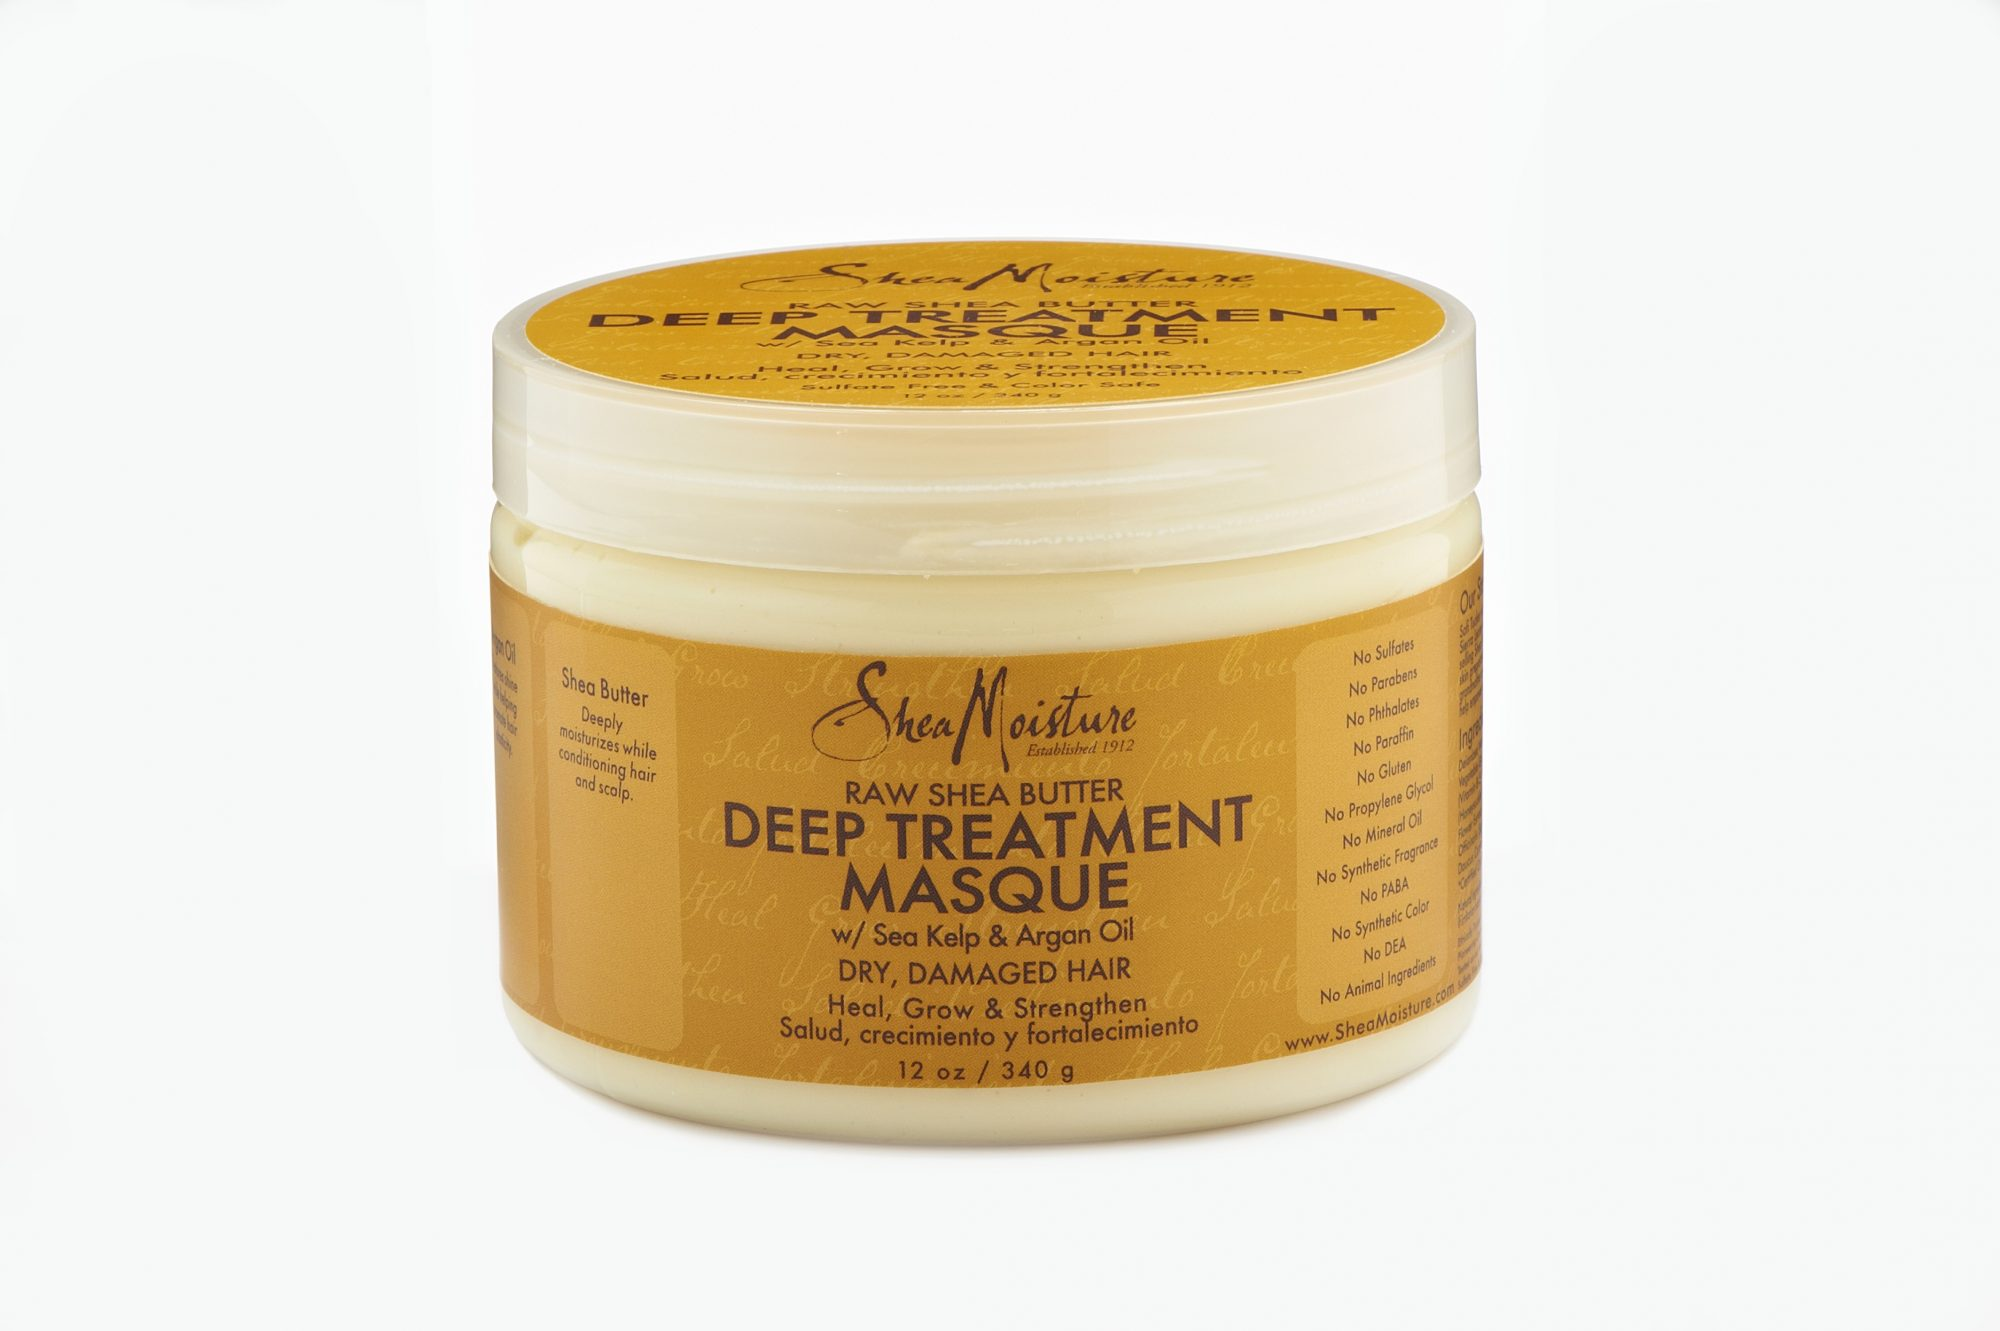 SheaMoisture Raw Shea Butter Deep Treatment Masque